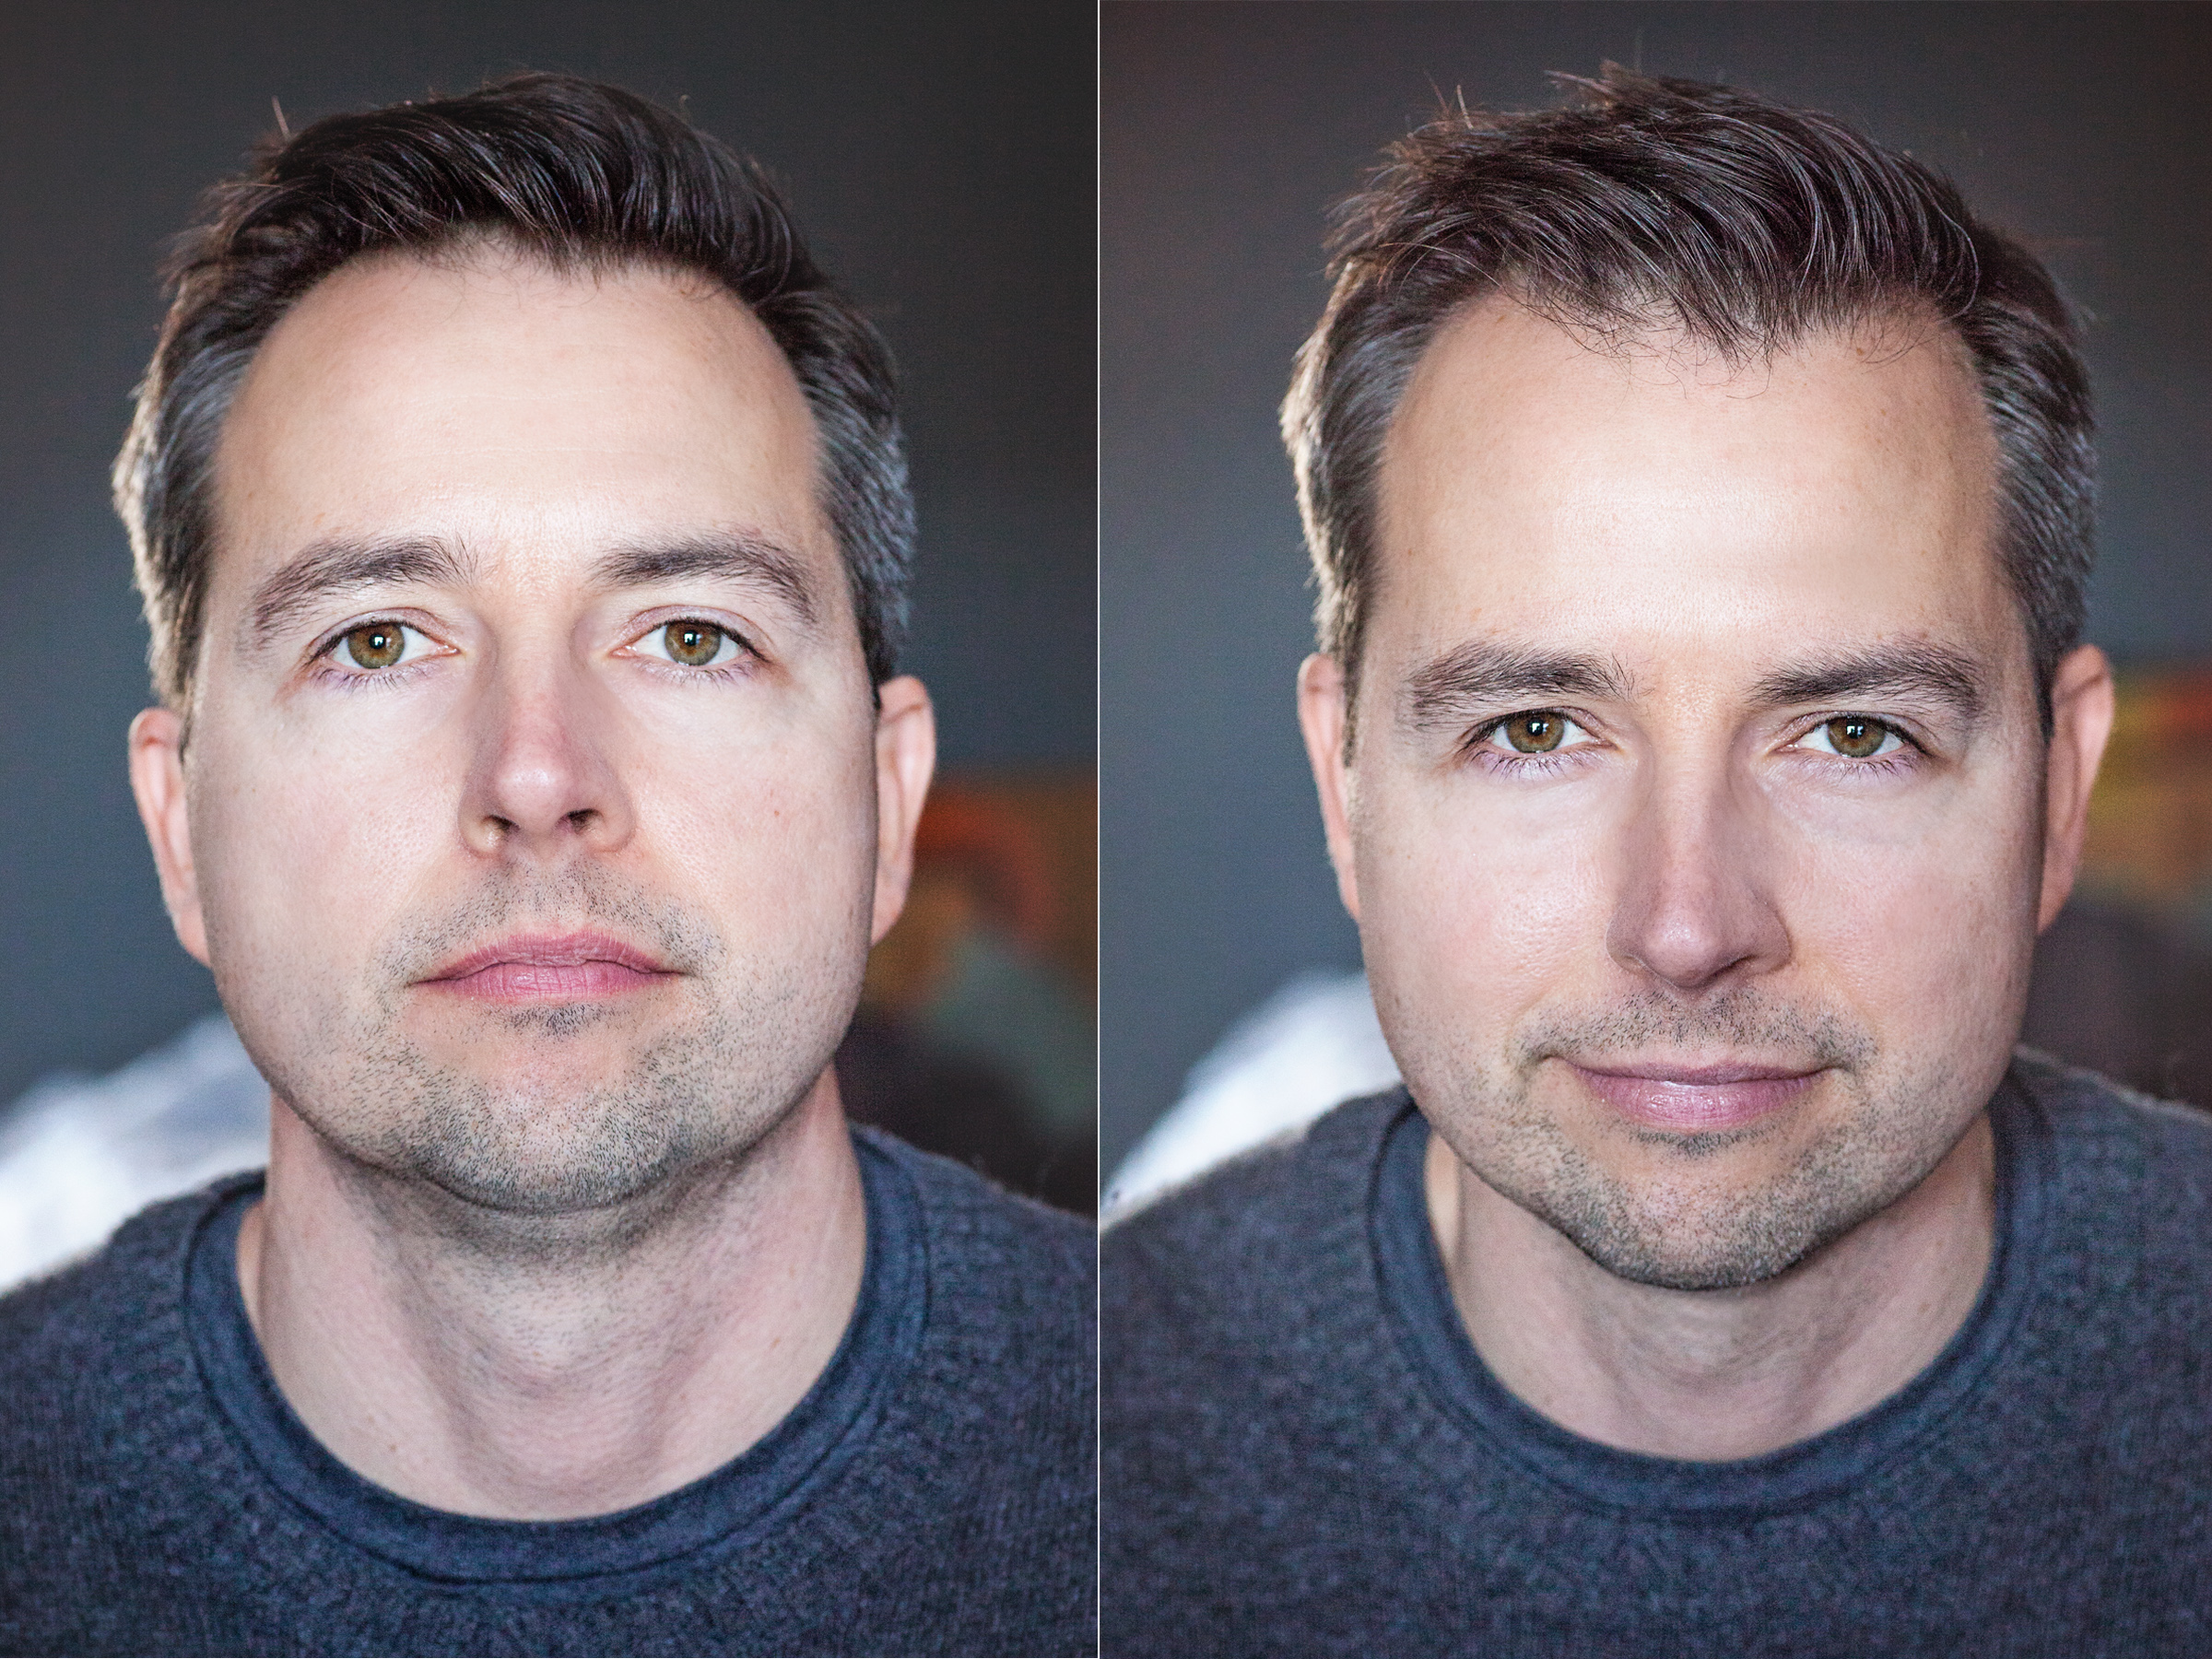 My husband mastered the squinch between conference calls. It is easy with a visual reference and a little practice, and the results can be dramatic!